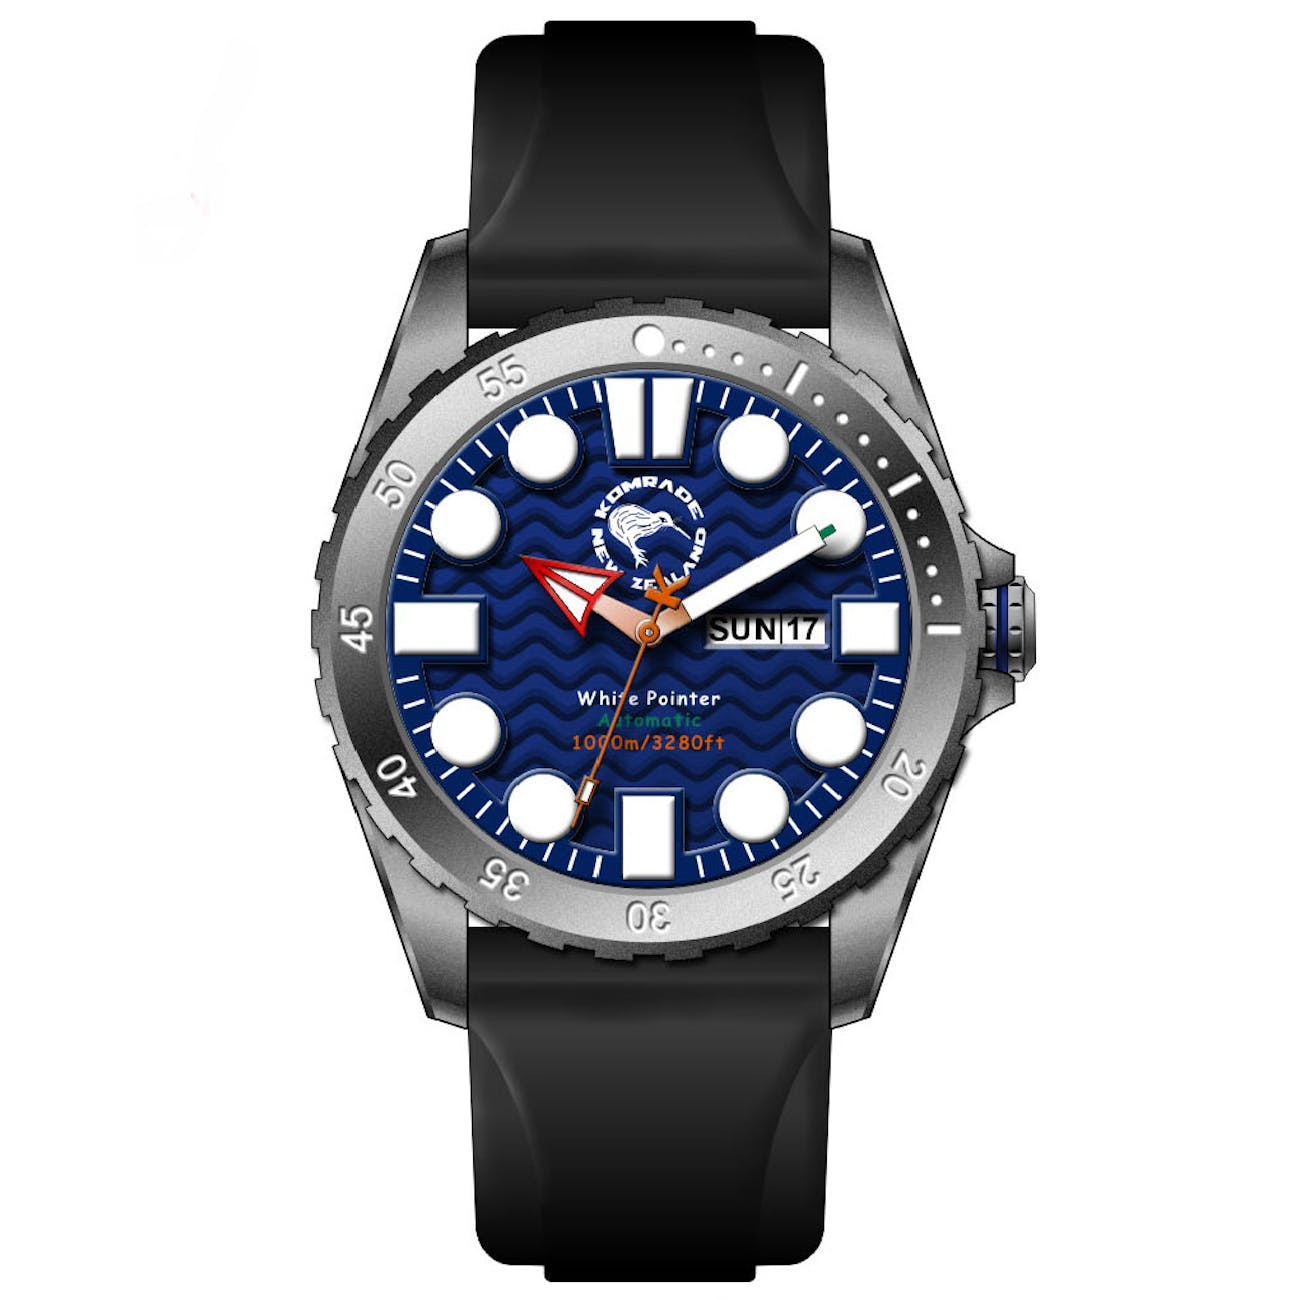 Indestructible, waterproof watch with silicone straps and sapphire glass crystal display